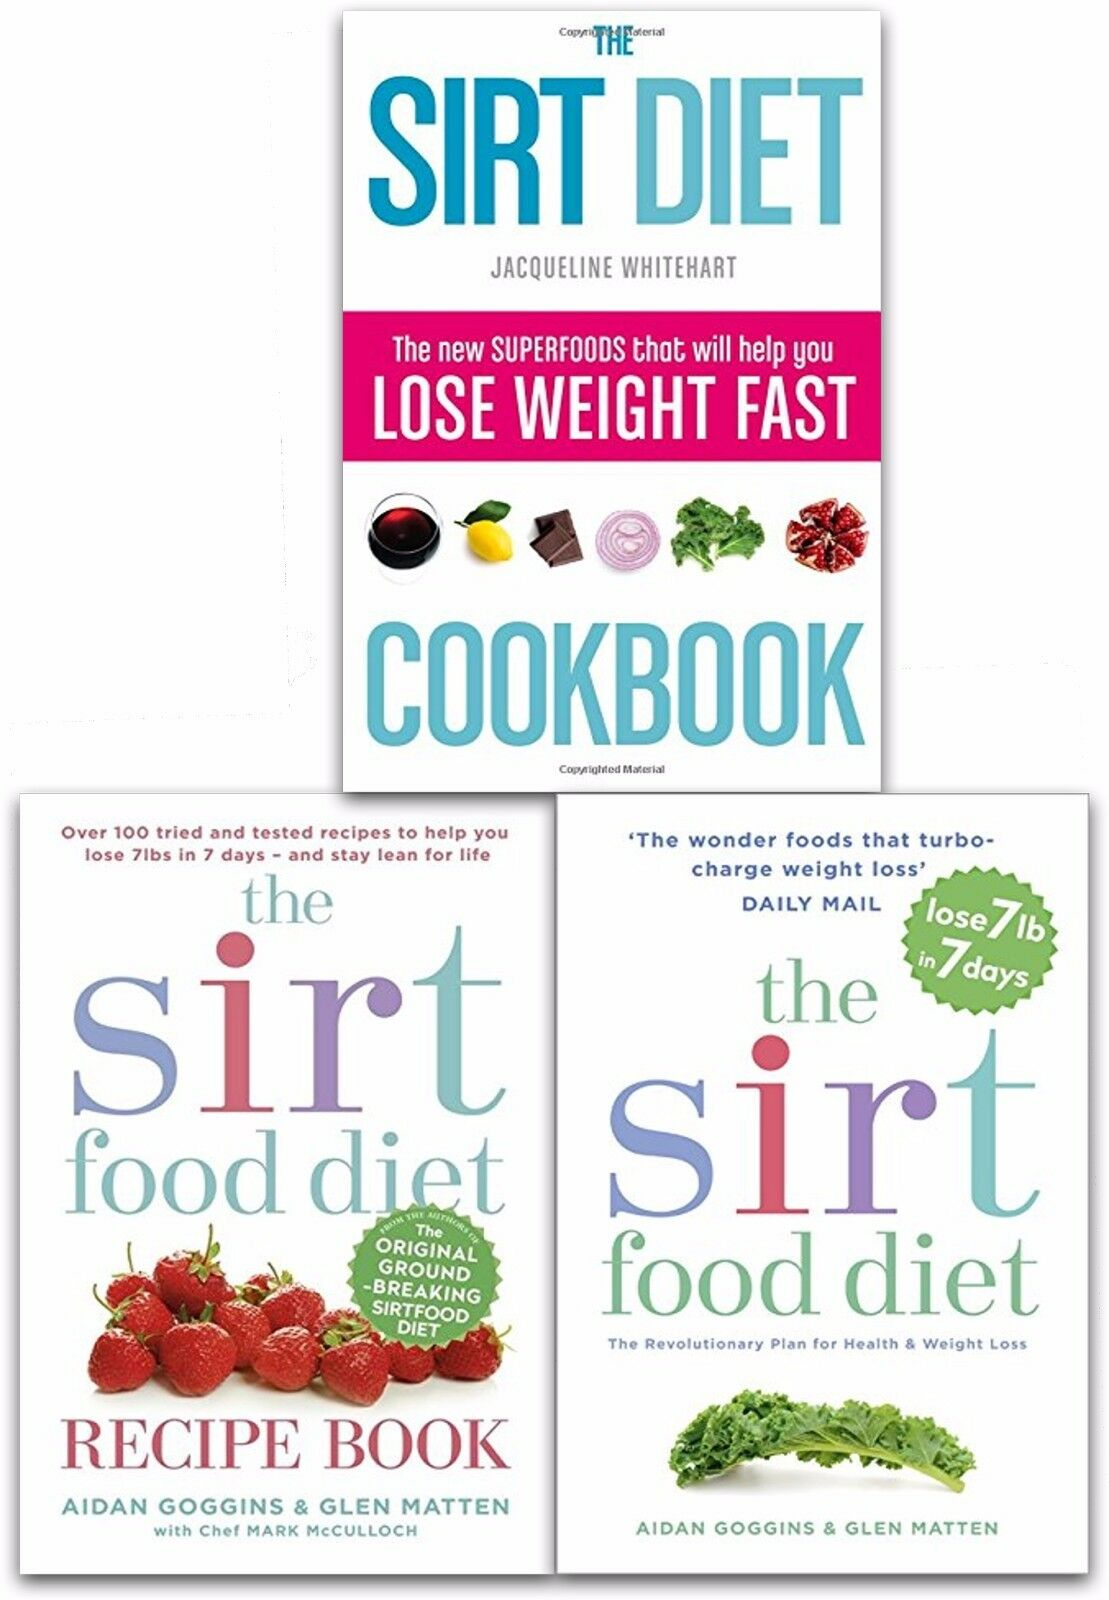 How Adele Lost Weight – A Review of the Sirtfood Diet